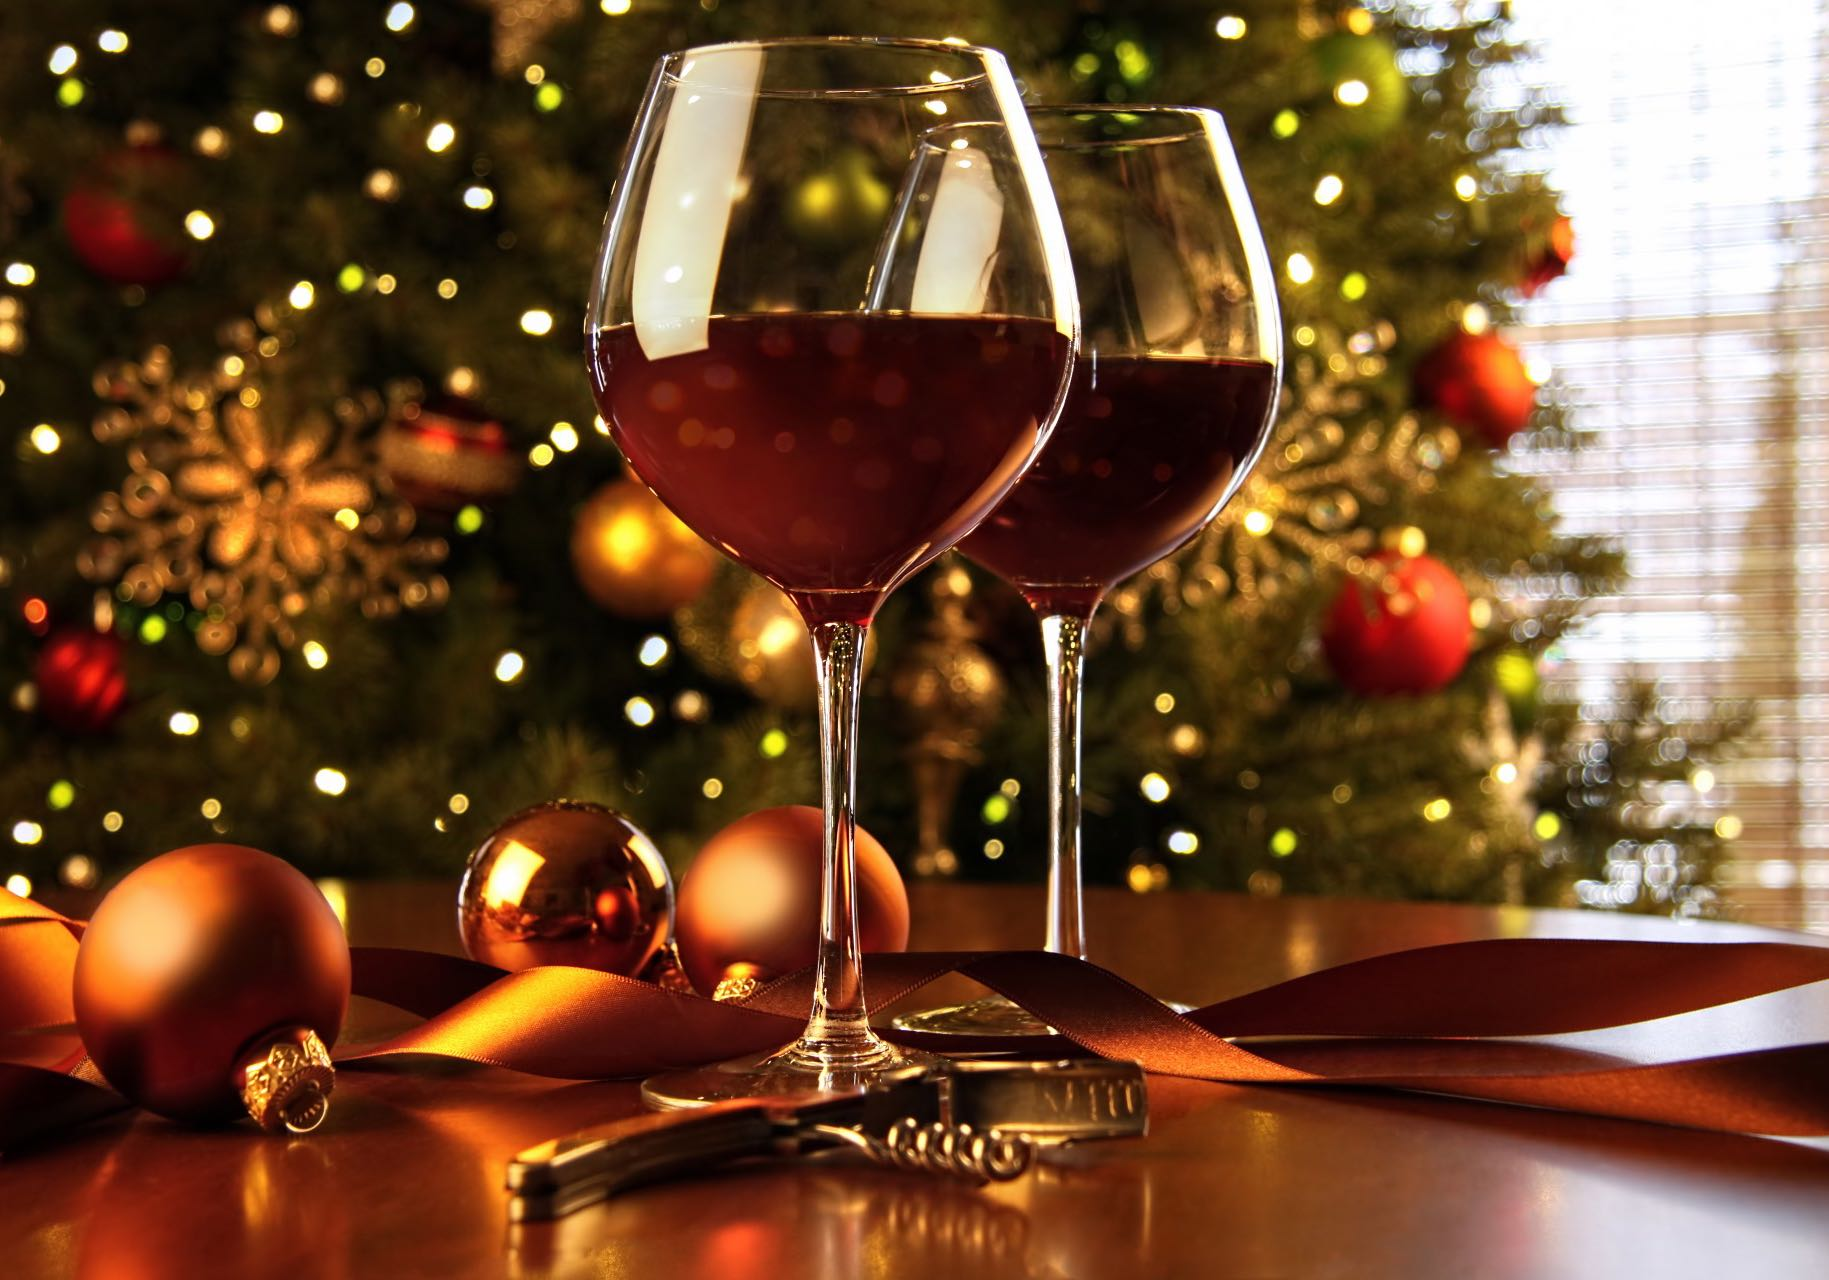 Christmas wine and food. Blog article